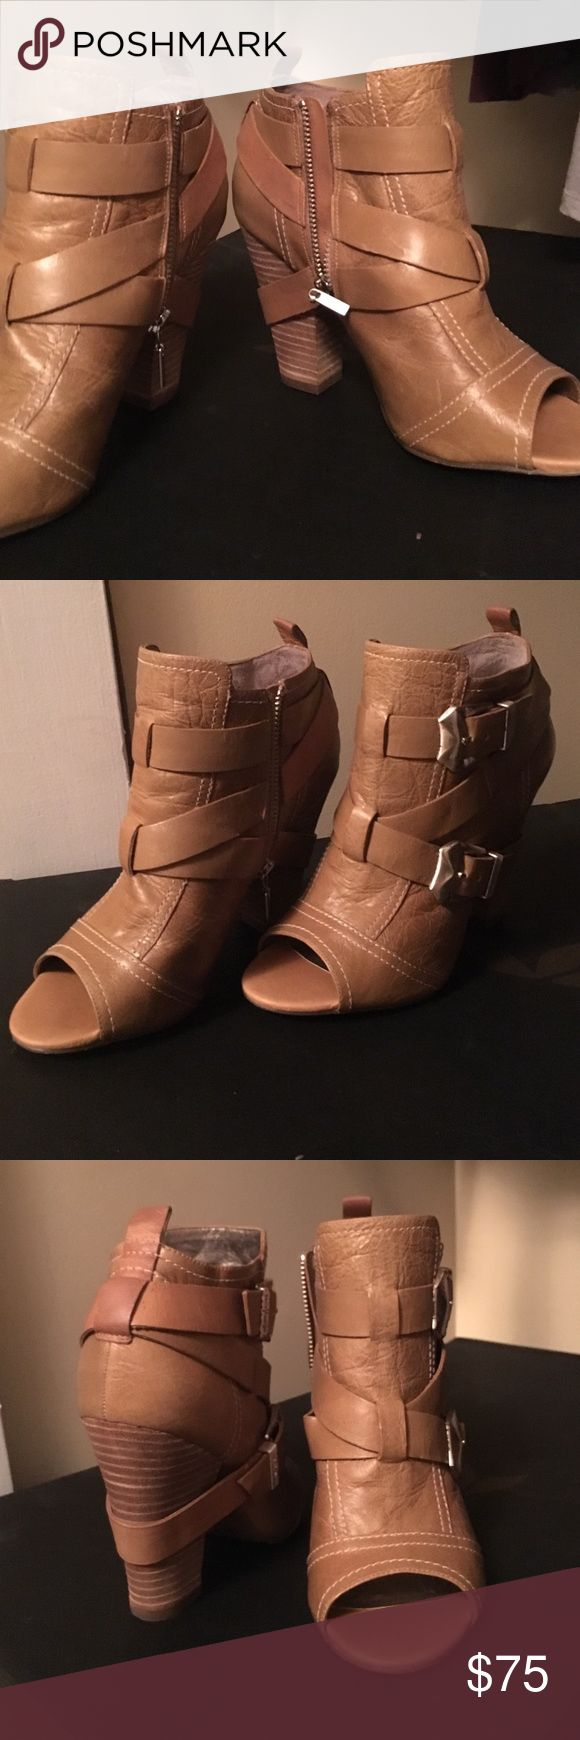 Vince Camuto gladiator leather sandals heels pumps Vince Camuto gladiator sandals with stacked heel and real leather upper and sole - gorgeous and smell amazing. Never worn but no box - rare & sold out everywhere. Vince Camuto Shoes Heels